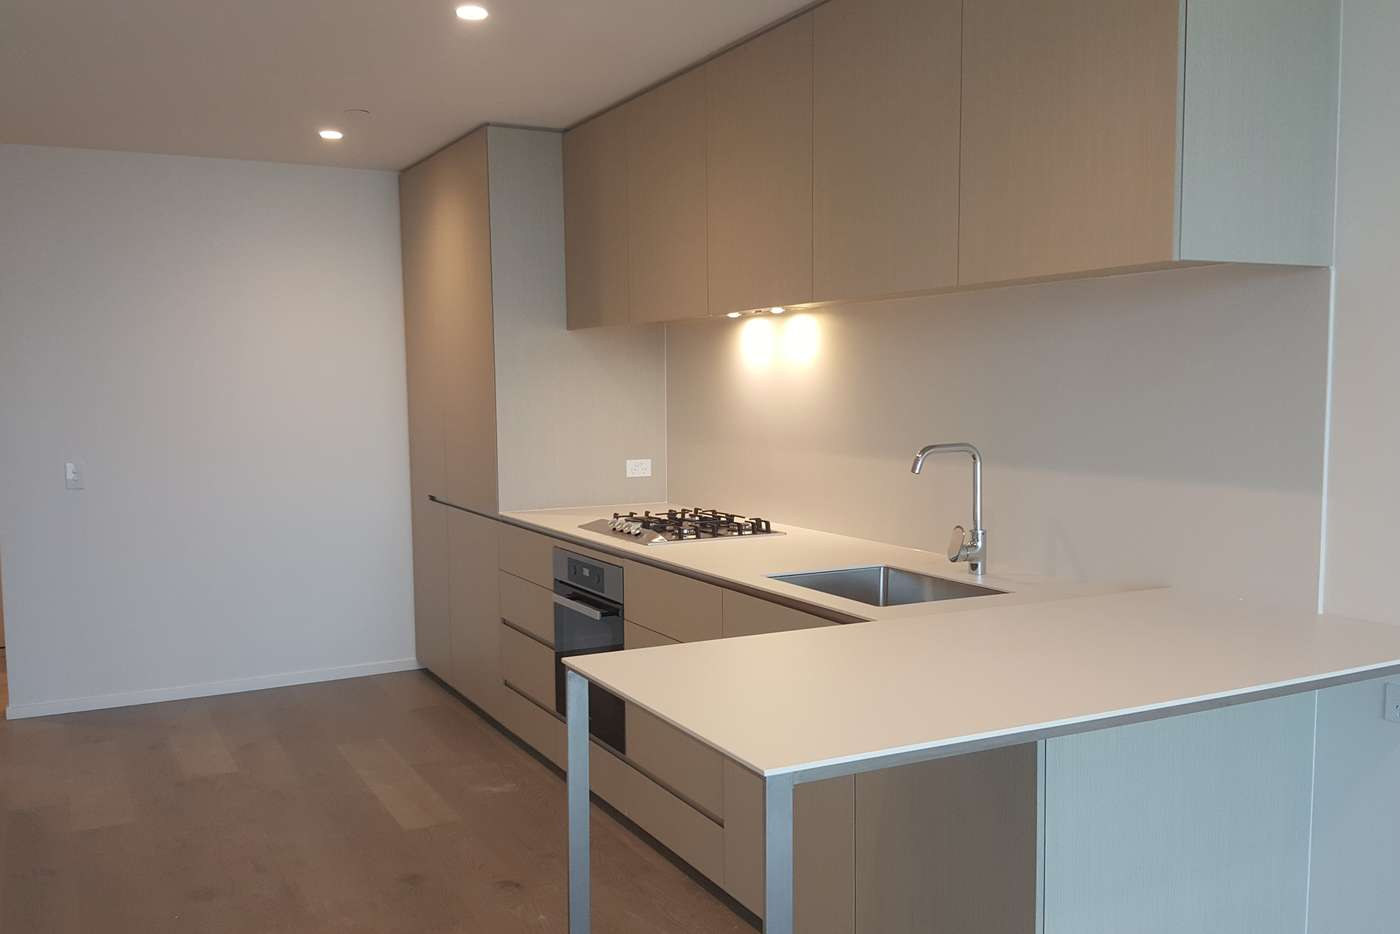 Sixth view of Homely apartment listing, 2417/70 Southbank Boulevard, Southbank VIC 3006